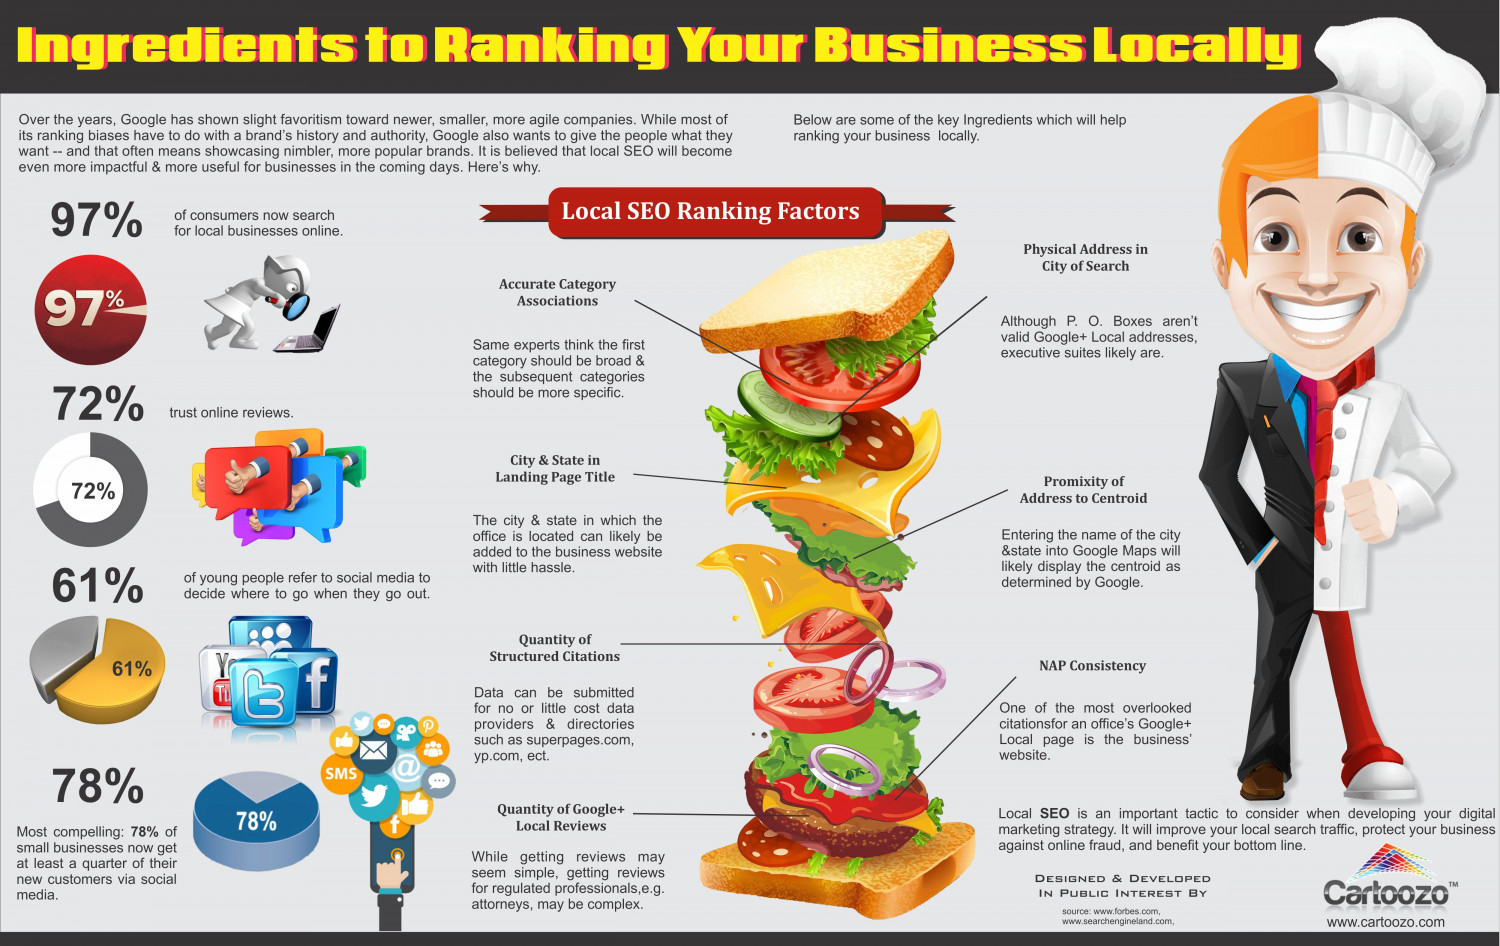 Ingredients to Ranking Your Business Locally Infographic